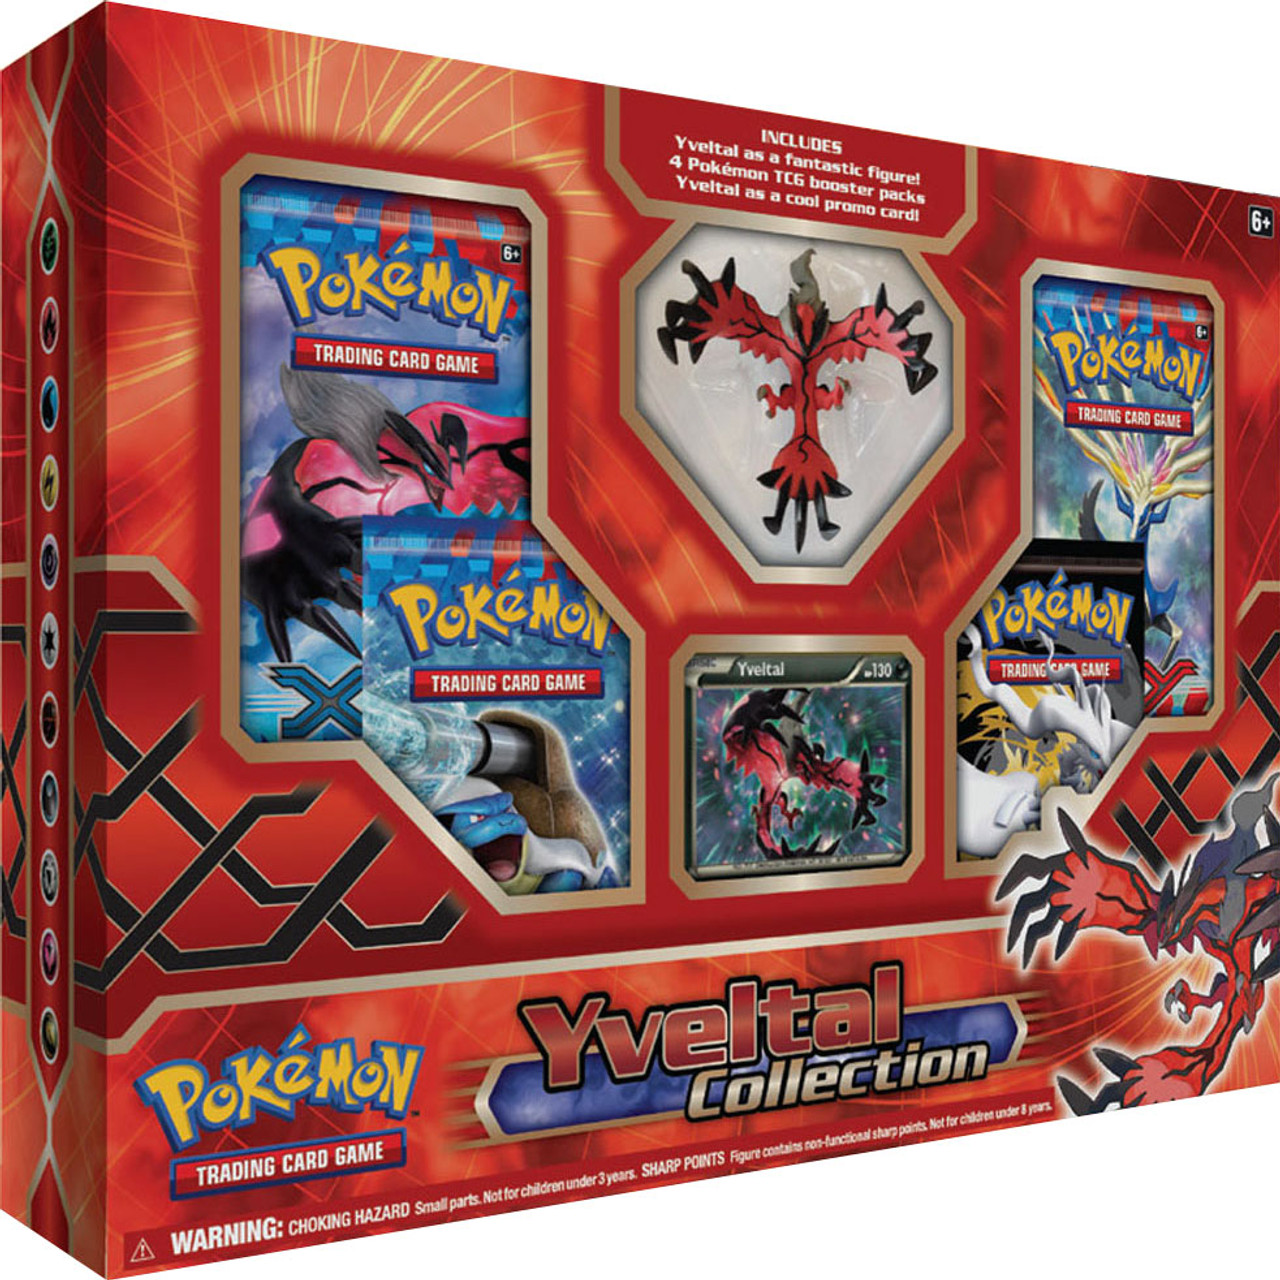 Pokemon X & Y Yveltal Collection